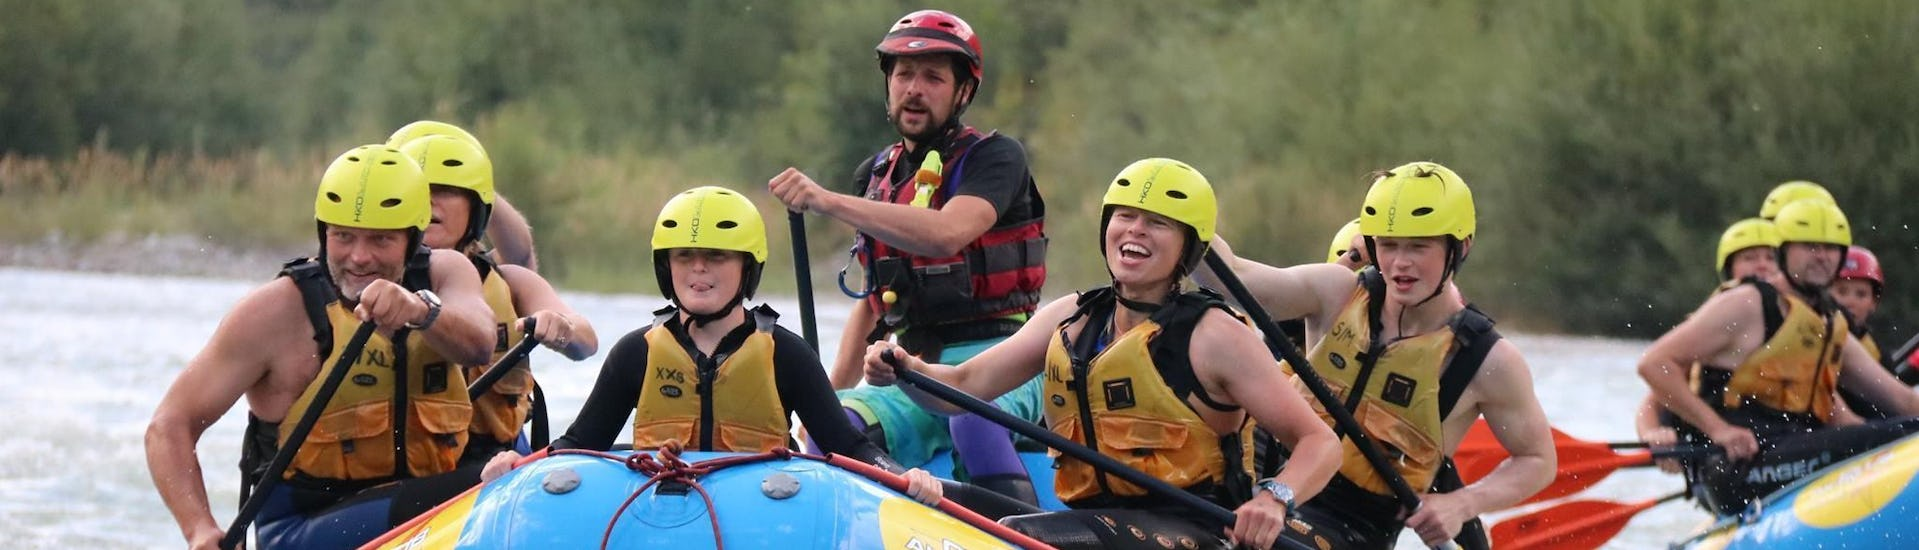 Rafting on the Isel River for Families